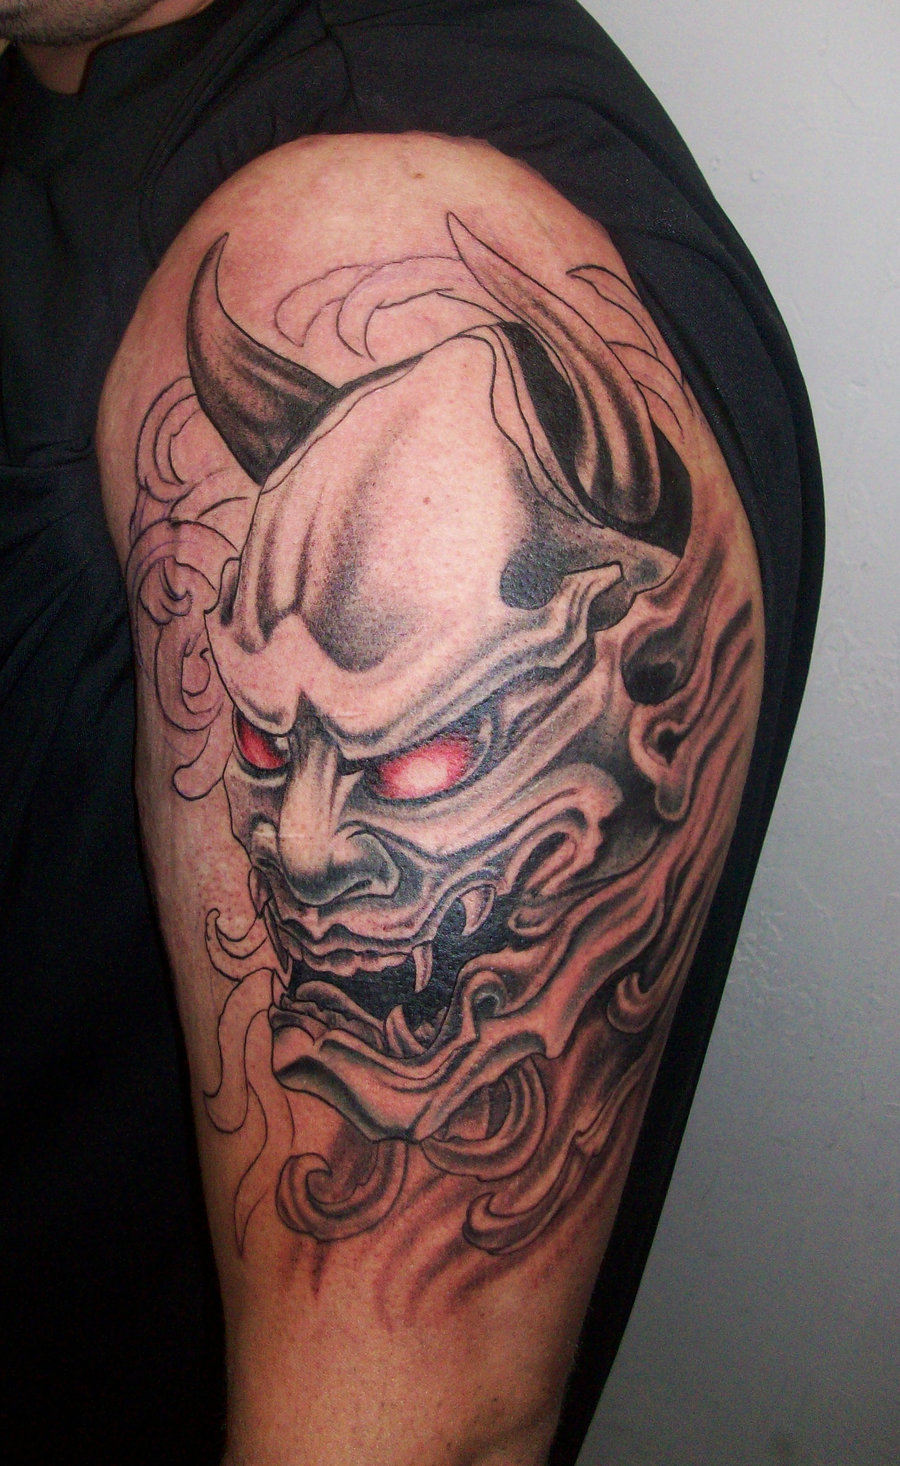 35 Oni Mask Tattoos With Mysterious and Powerful Meanings ...